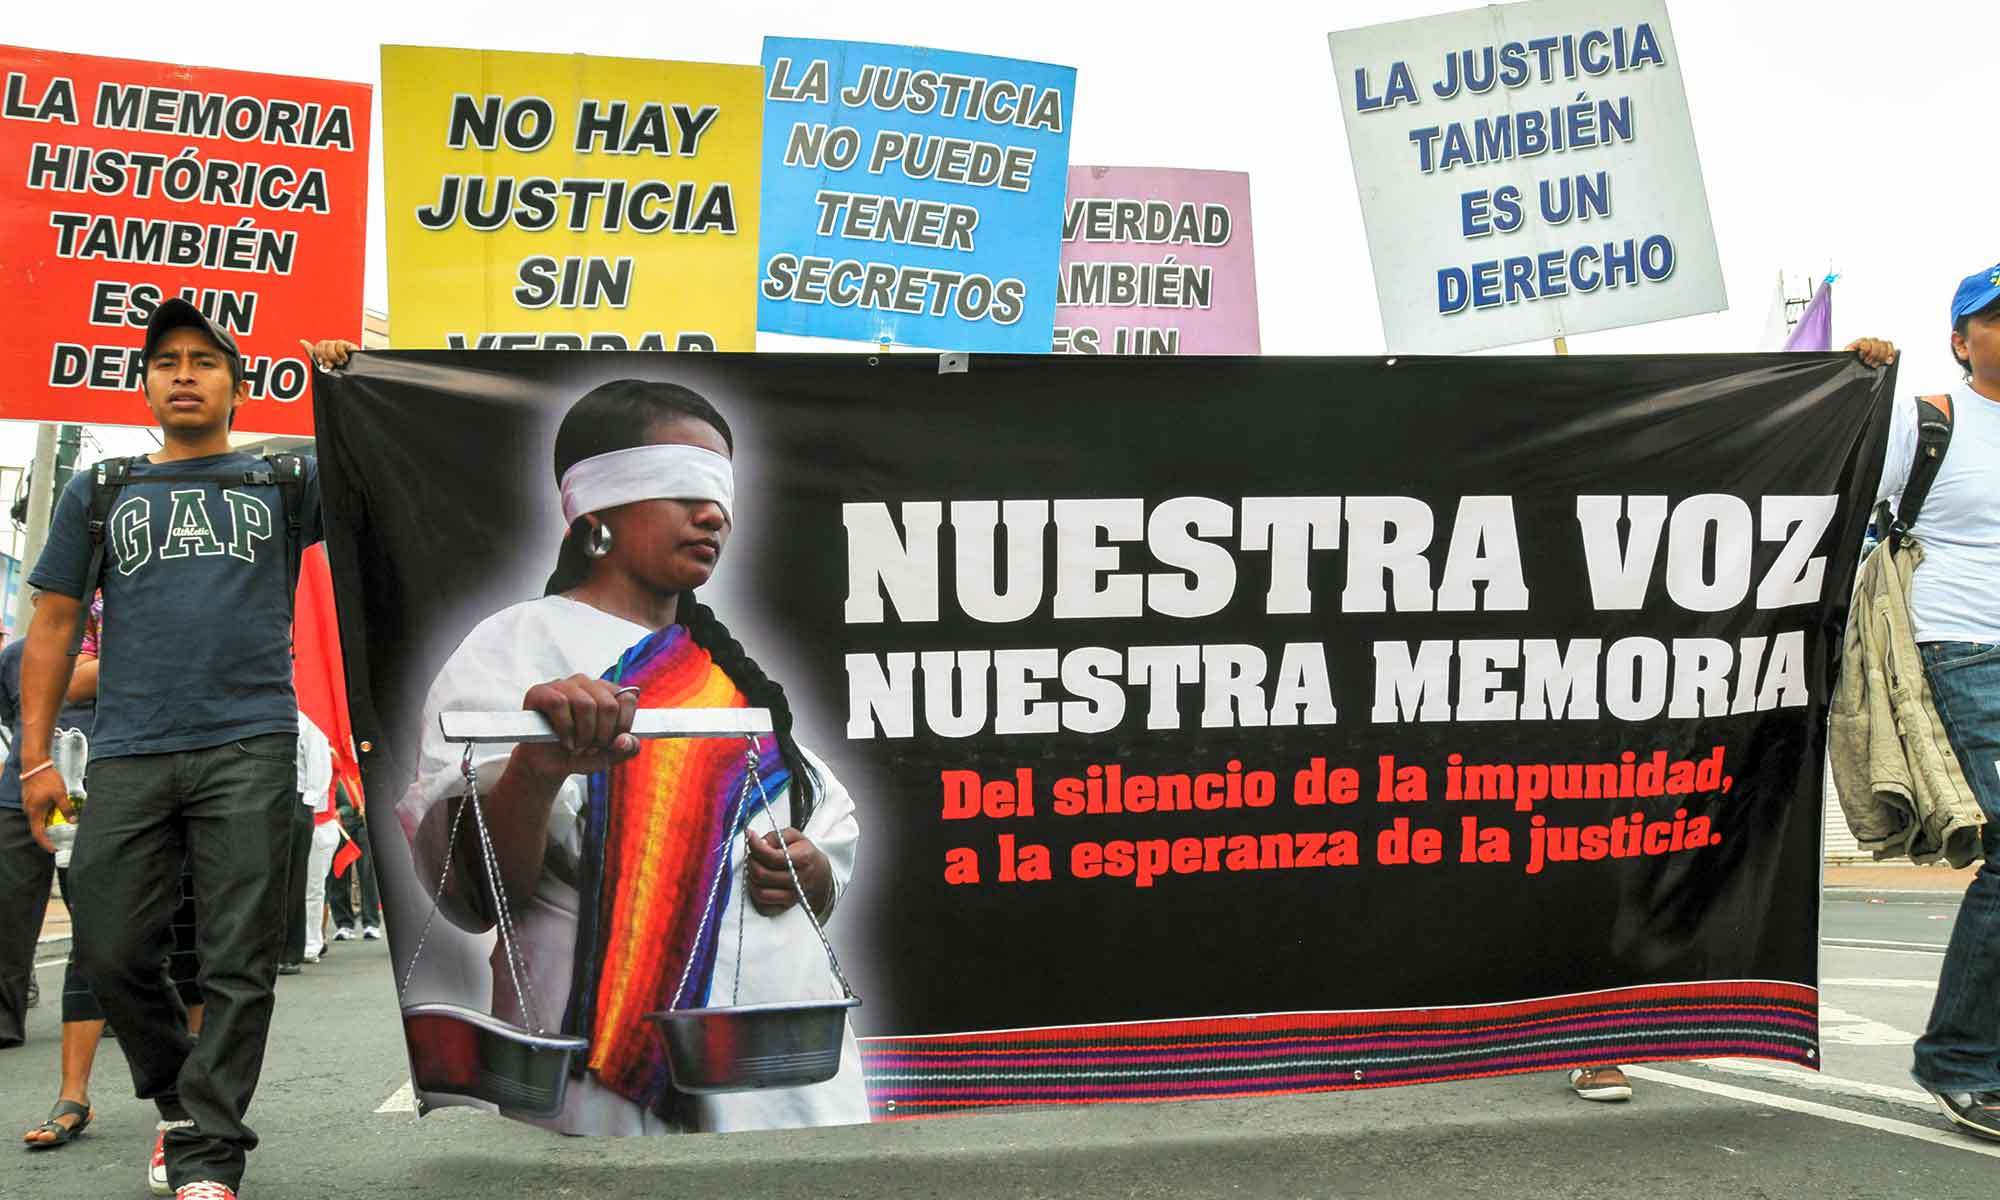 A march for justice in Guatemala